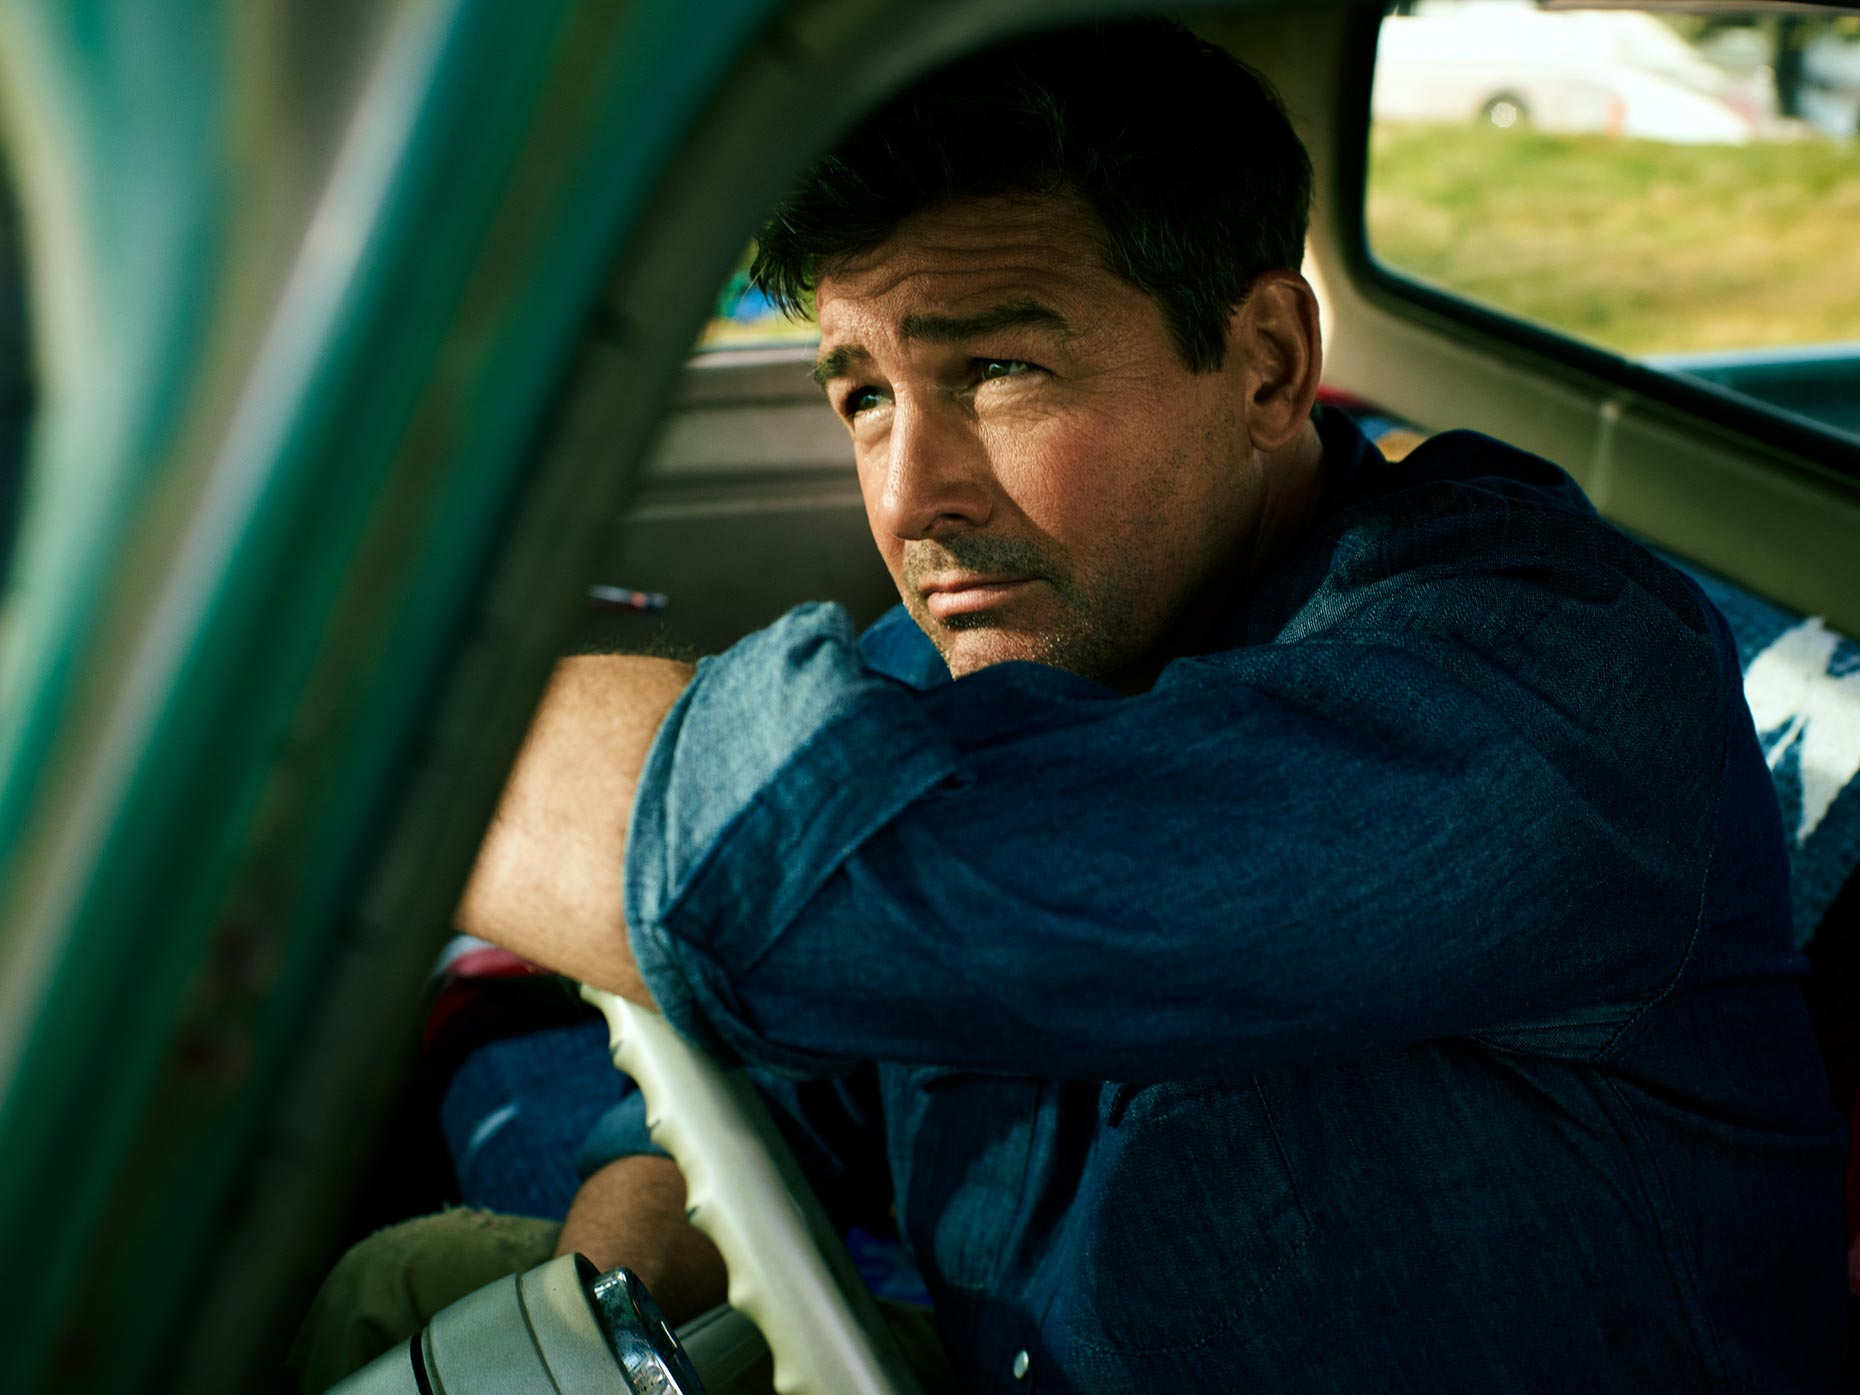 1612-03a-05_Kyle_Chandler_1057web